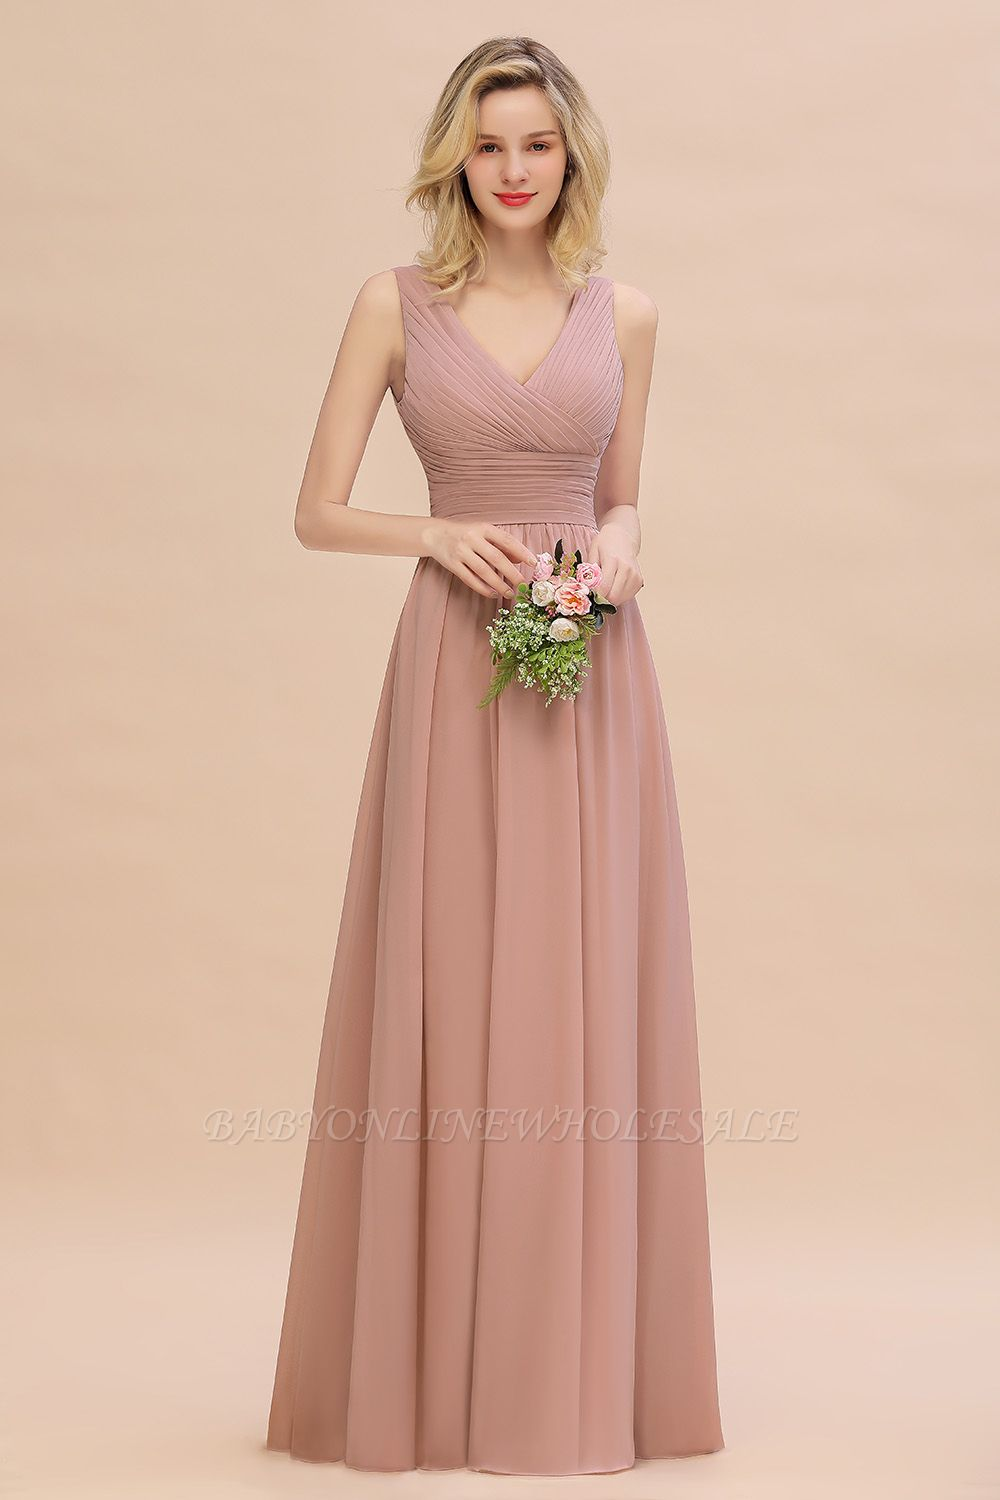 Elegant V-Neck Ruffles Bridesmaid Dress On Sale | Sexy Long Evening Dresses